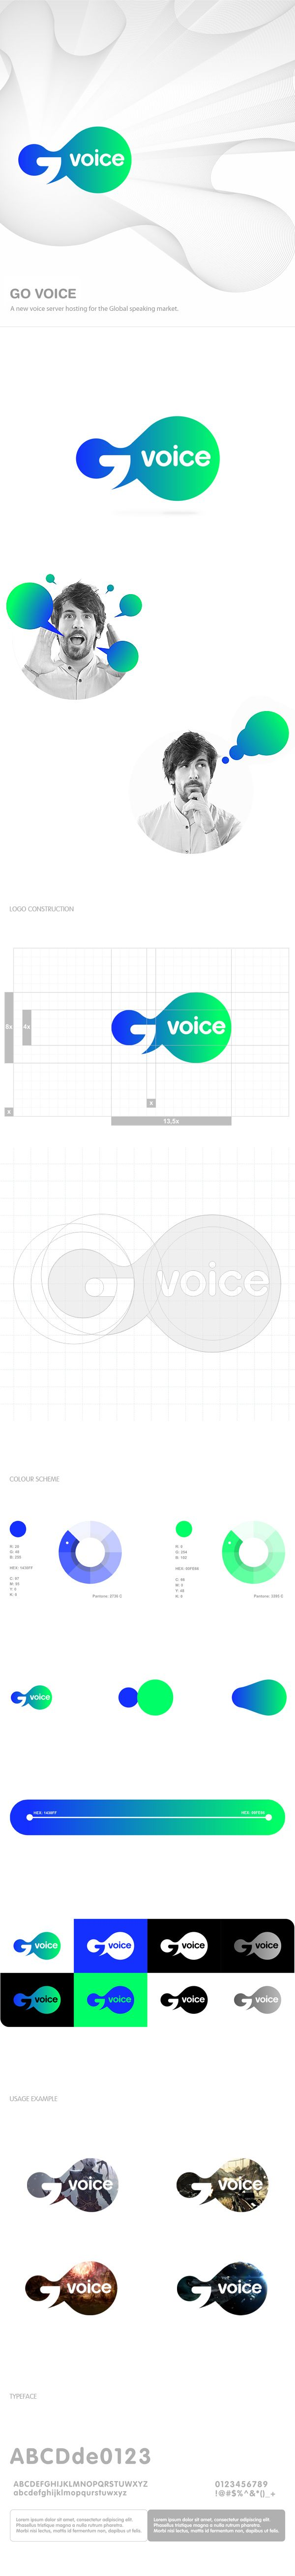 Go Voice by Fuse Collective